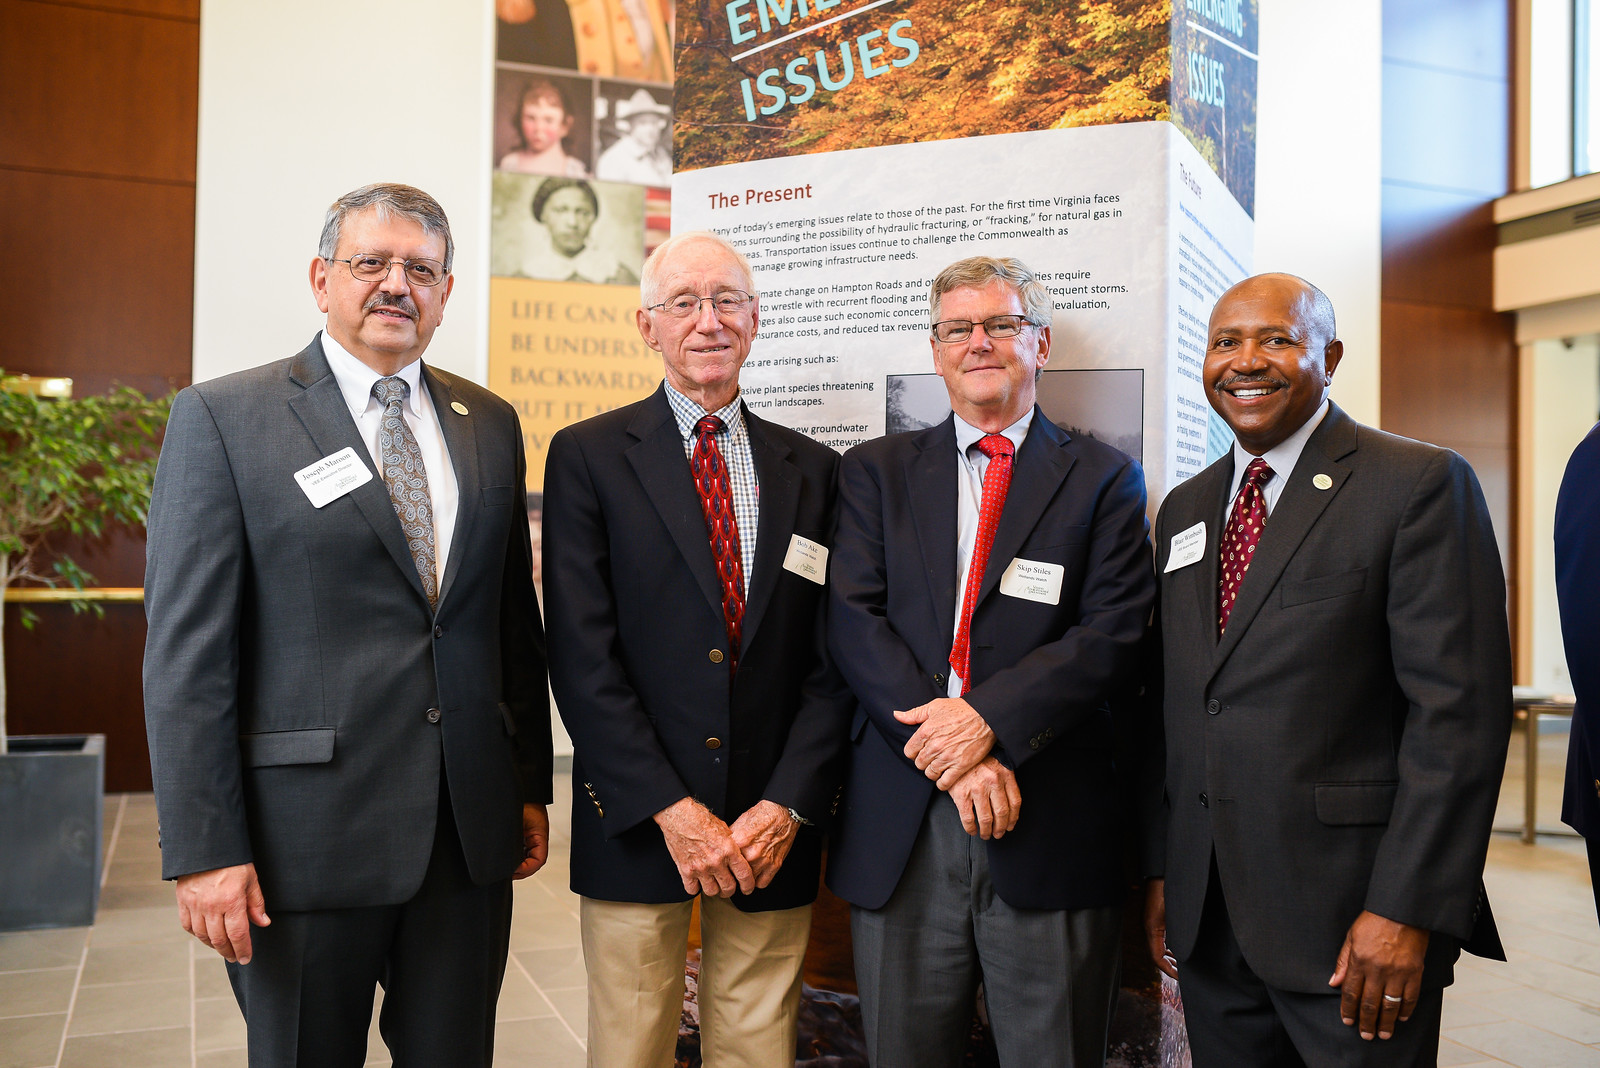 L-R: Joe Maroon, Executive Director, Virginia Environmental Endowment; Bob Ake, Board Chair, Wetlands Watch; Skip Stiles, Executive Director, Wetlands Watch; Blair Wimbush, Board Member, Virginia Environmental Endowment.